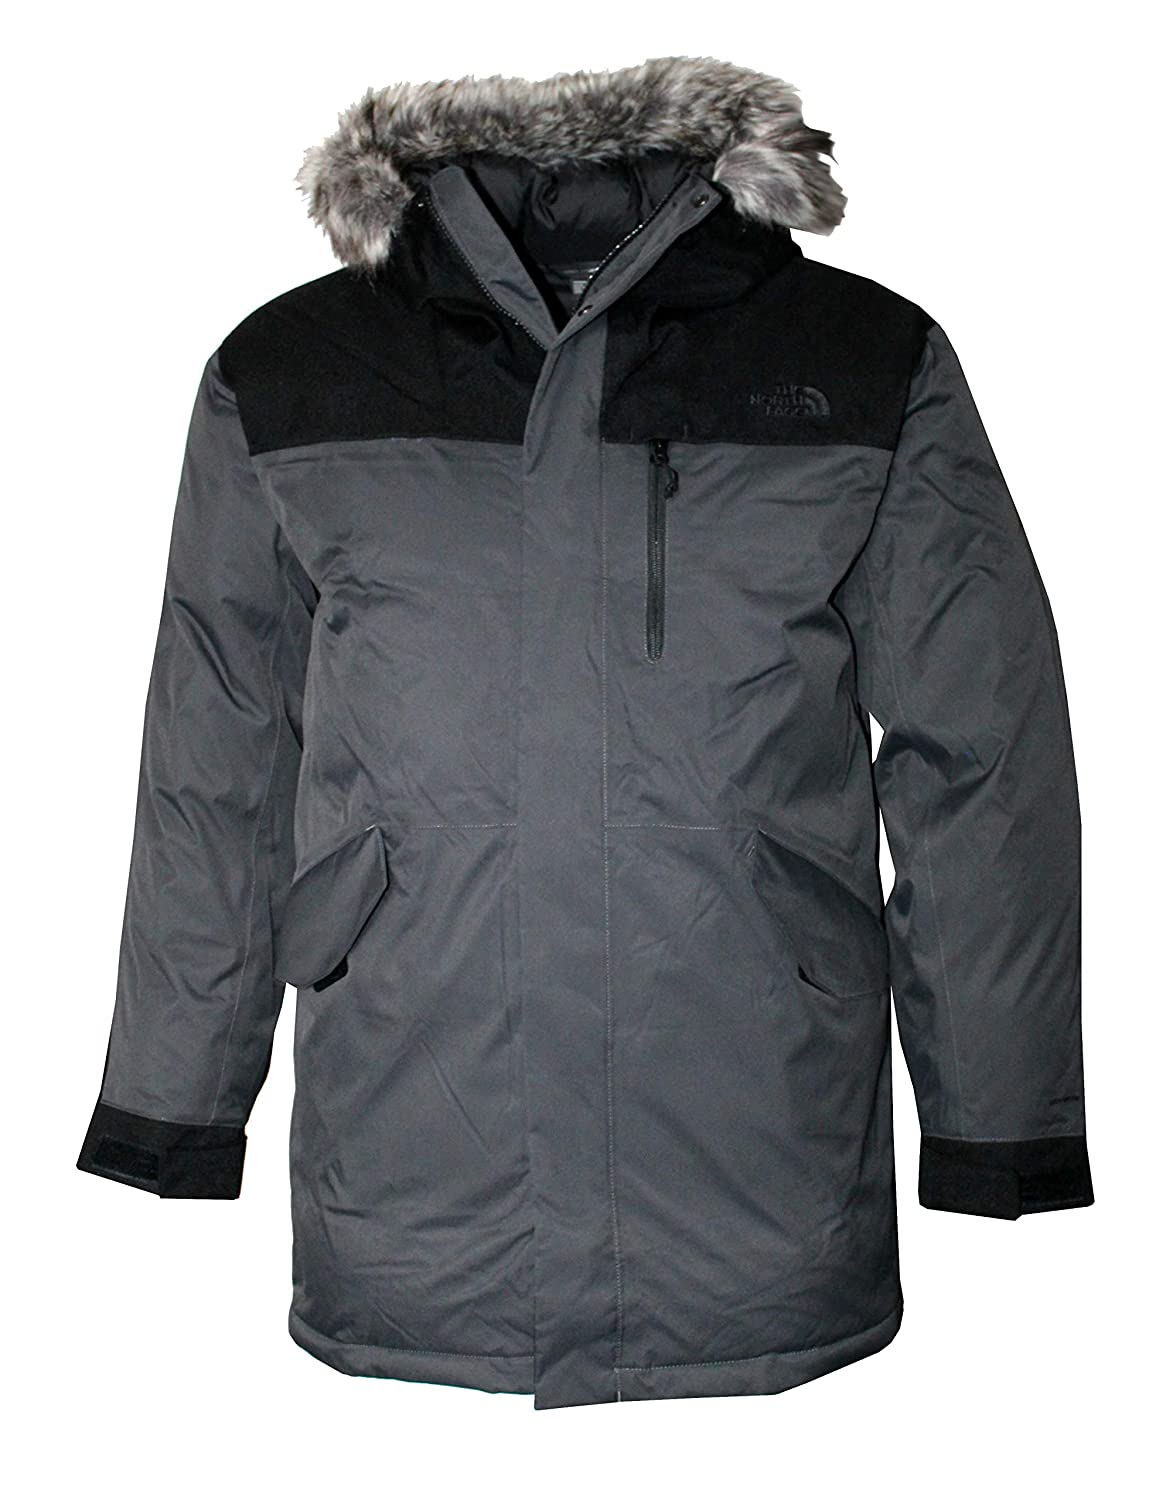 a34bac1f3a8 The North Face Bedford Men s Down Jacket Winter Parka at Amazon Men s  Clothing store